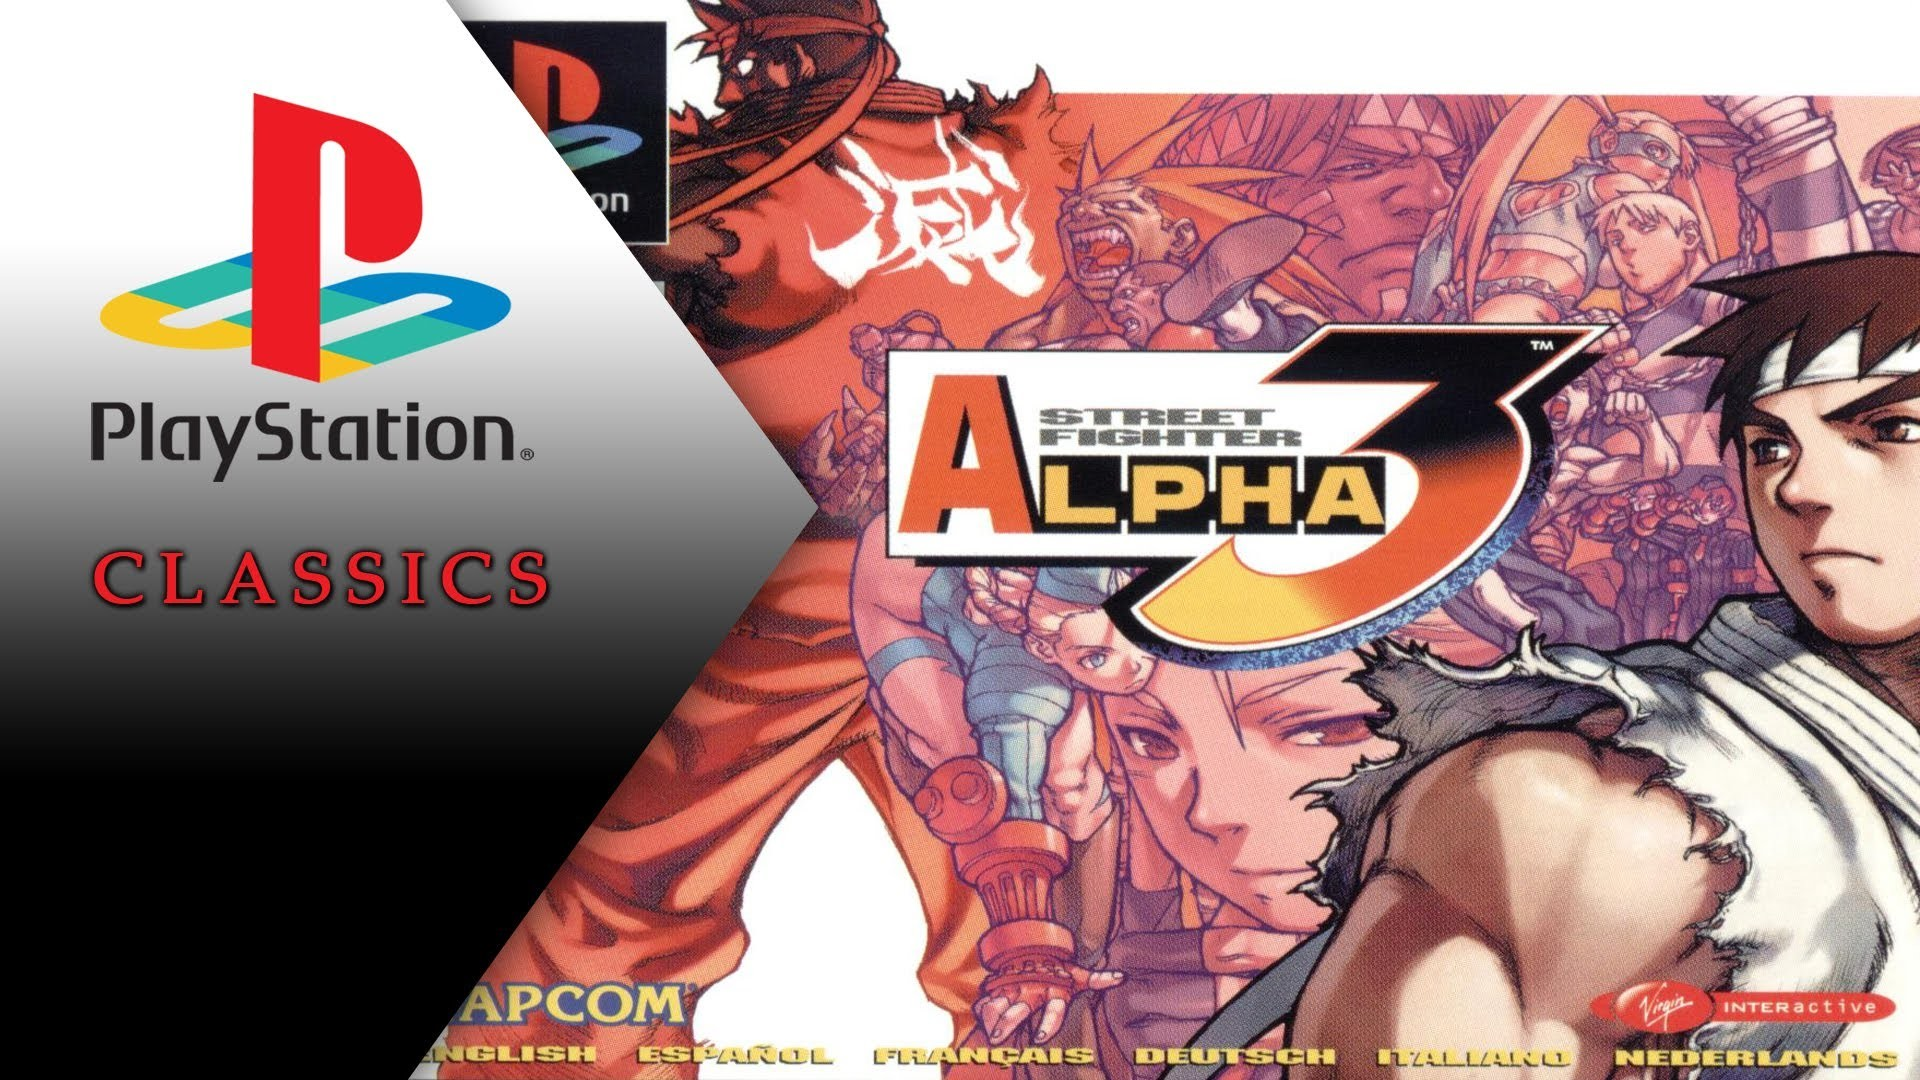 1920x1080 Street Fighter Alpha 3 HD Wallpaper 19 - 1920 X 1080